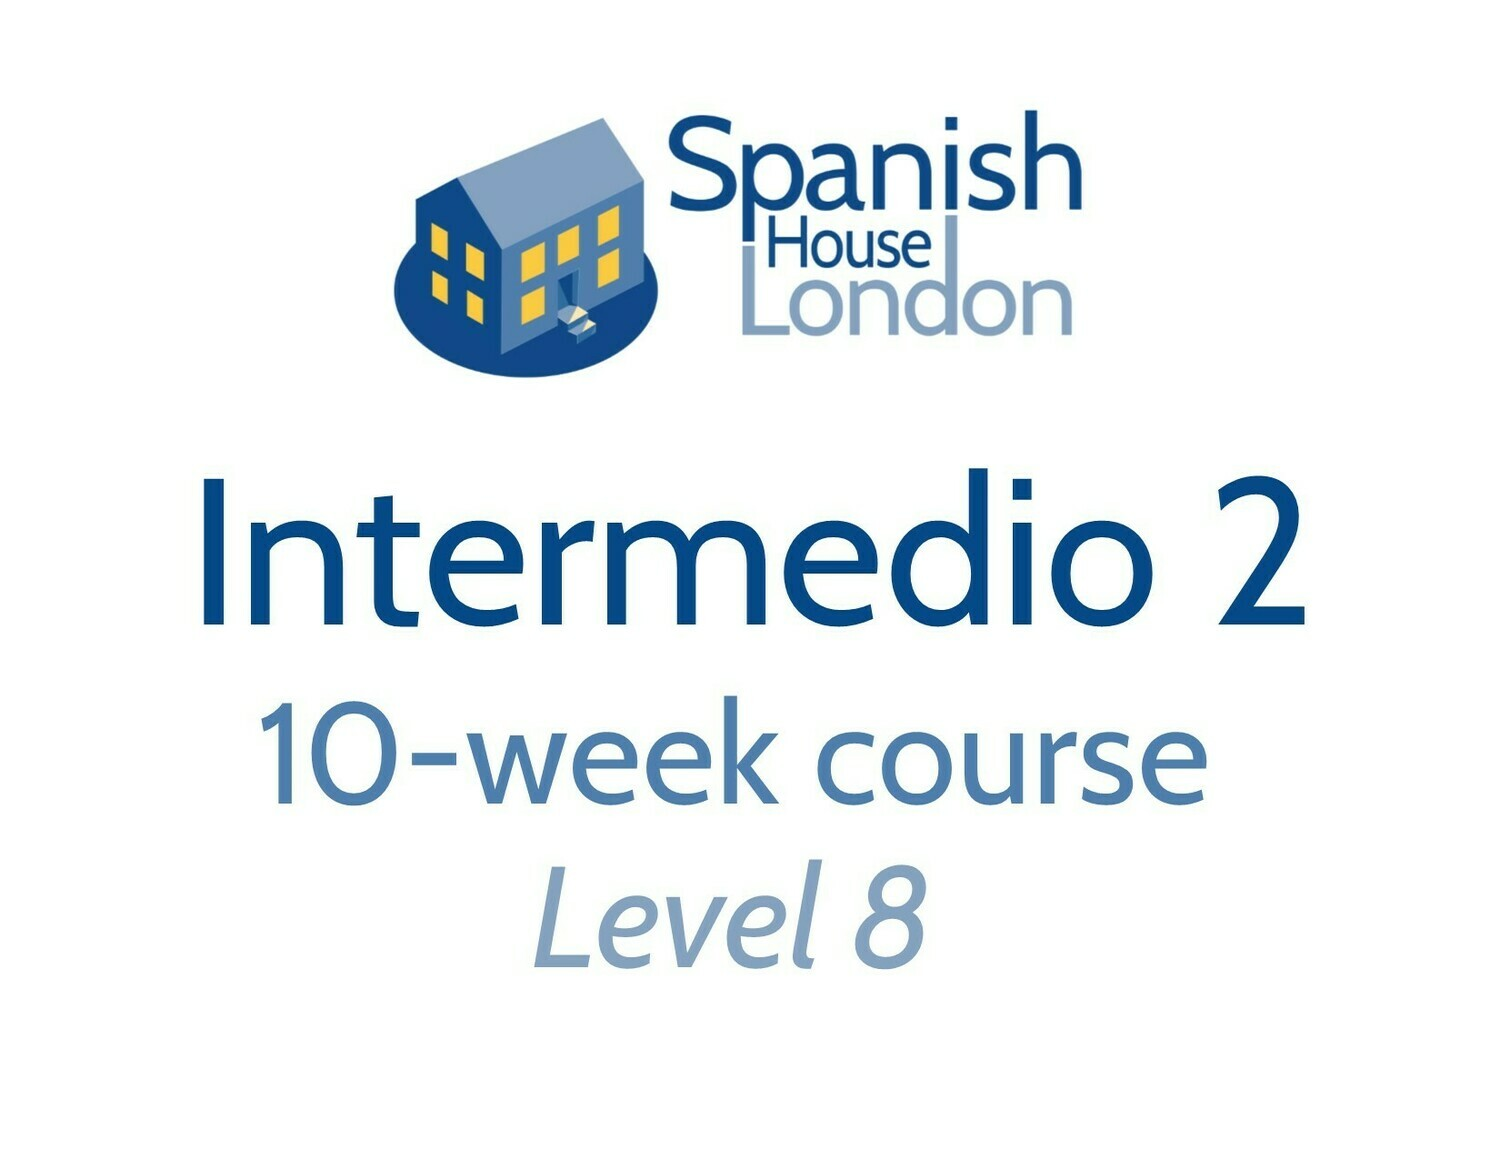 Intermedio 2 Course starting on 21st April at 7.30pm